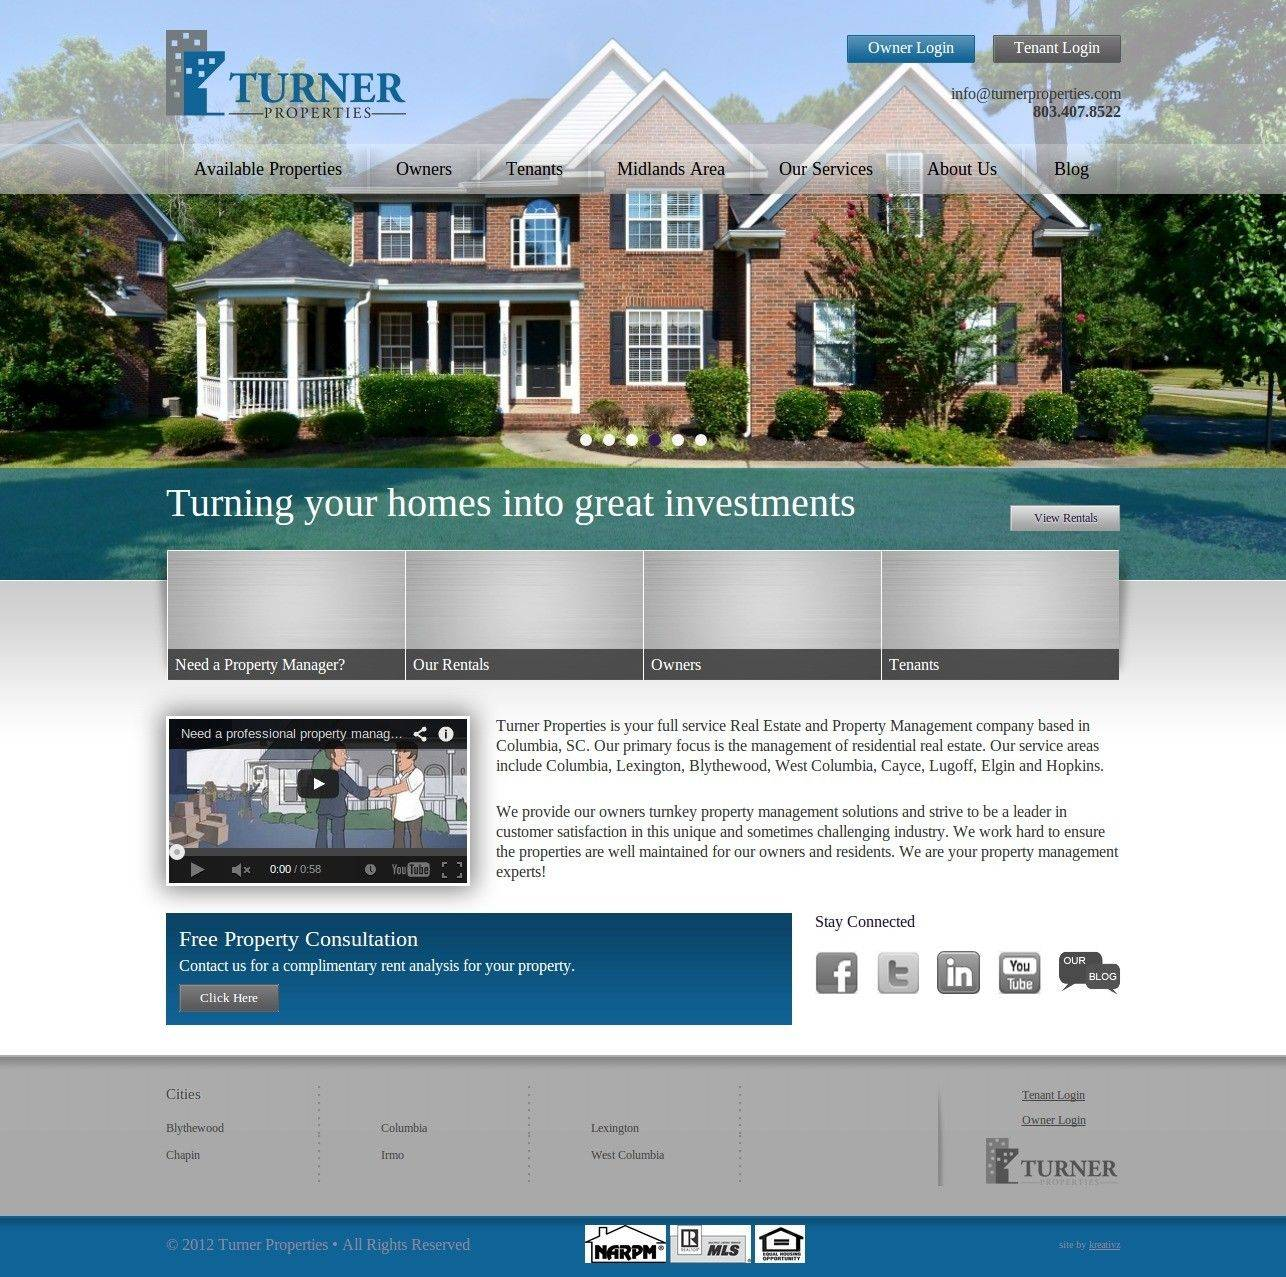 Turner Properties